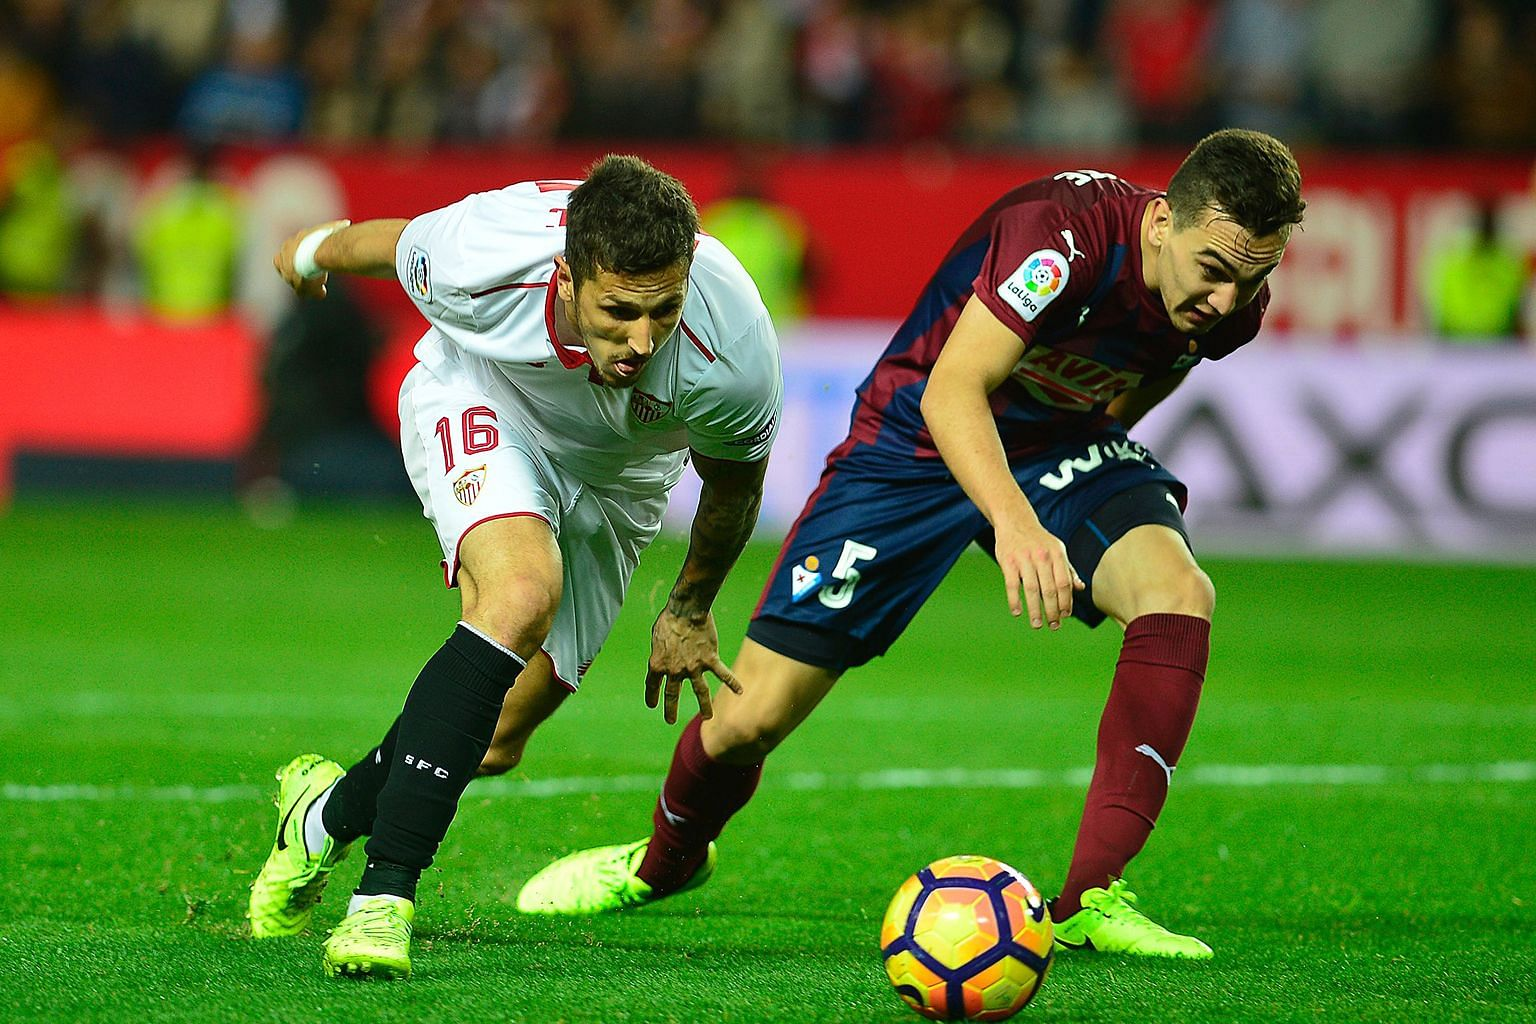 Sevilla's Stevan Jovetic (left) holds off Eibar's Gonzalo Escalante during their La Liga match on Saturday. The Montenegrin scored twice in his first two games for the Europa League winners, and his form will be a factor for Leicester City to take in